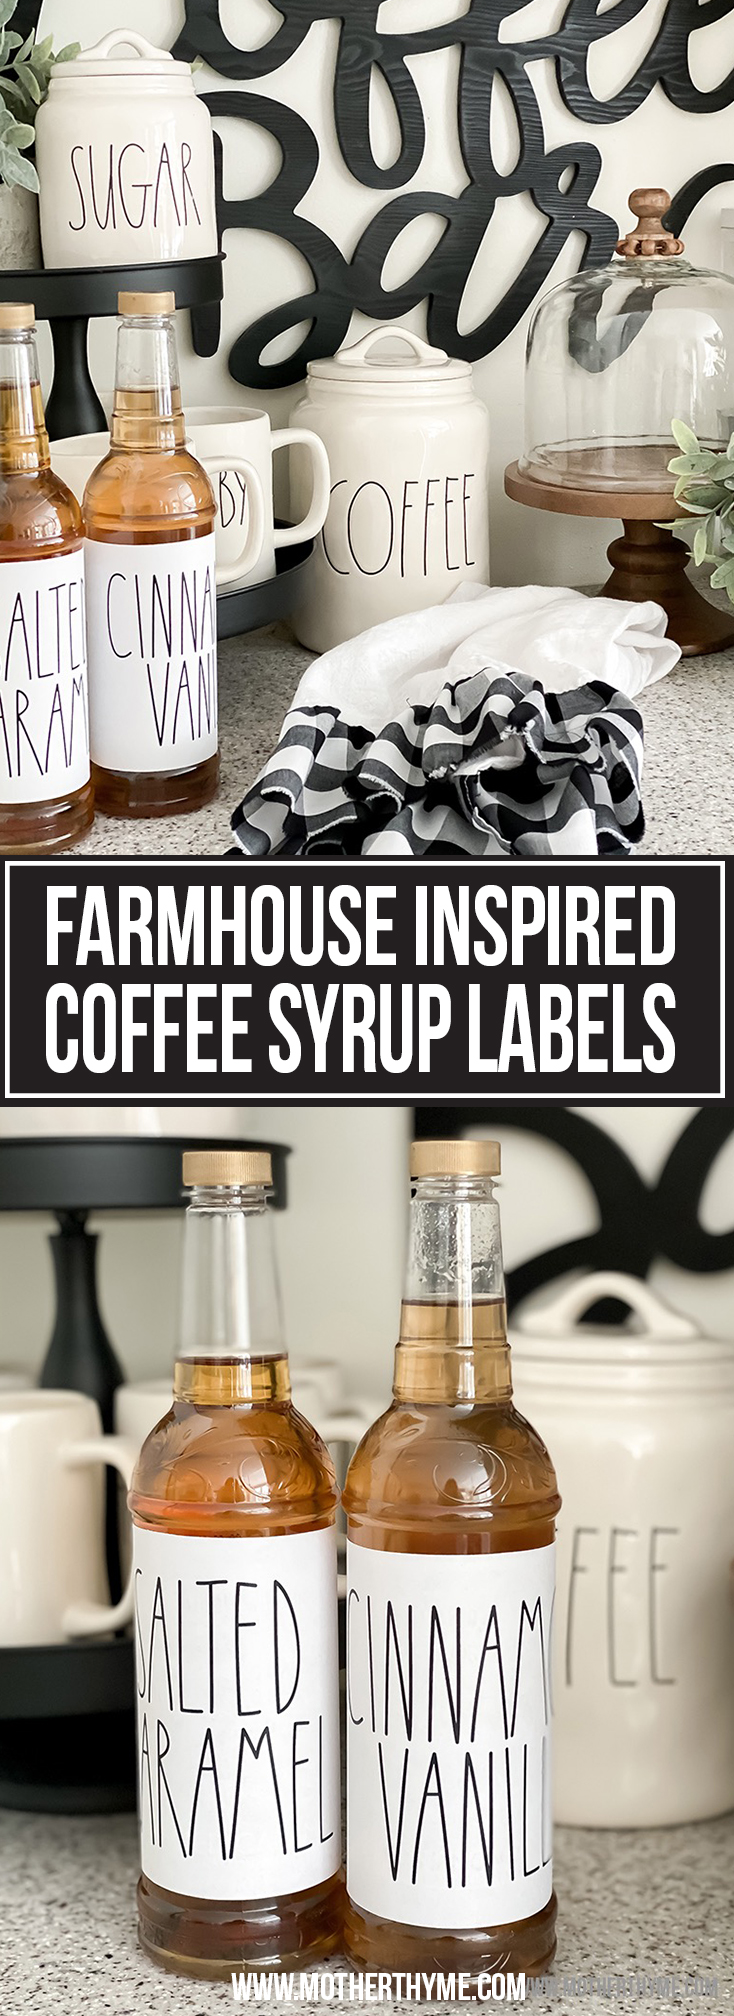 FARMHOUSE INSPIRED COFFEE SYRUP LABELS -FREE PRINTABLES